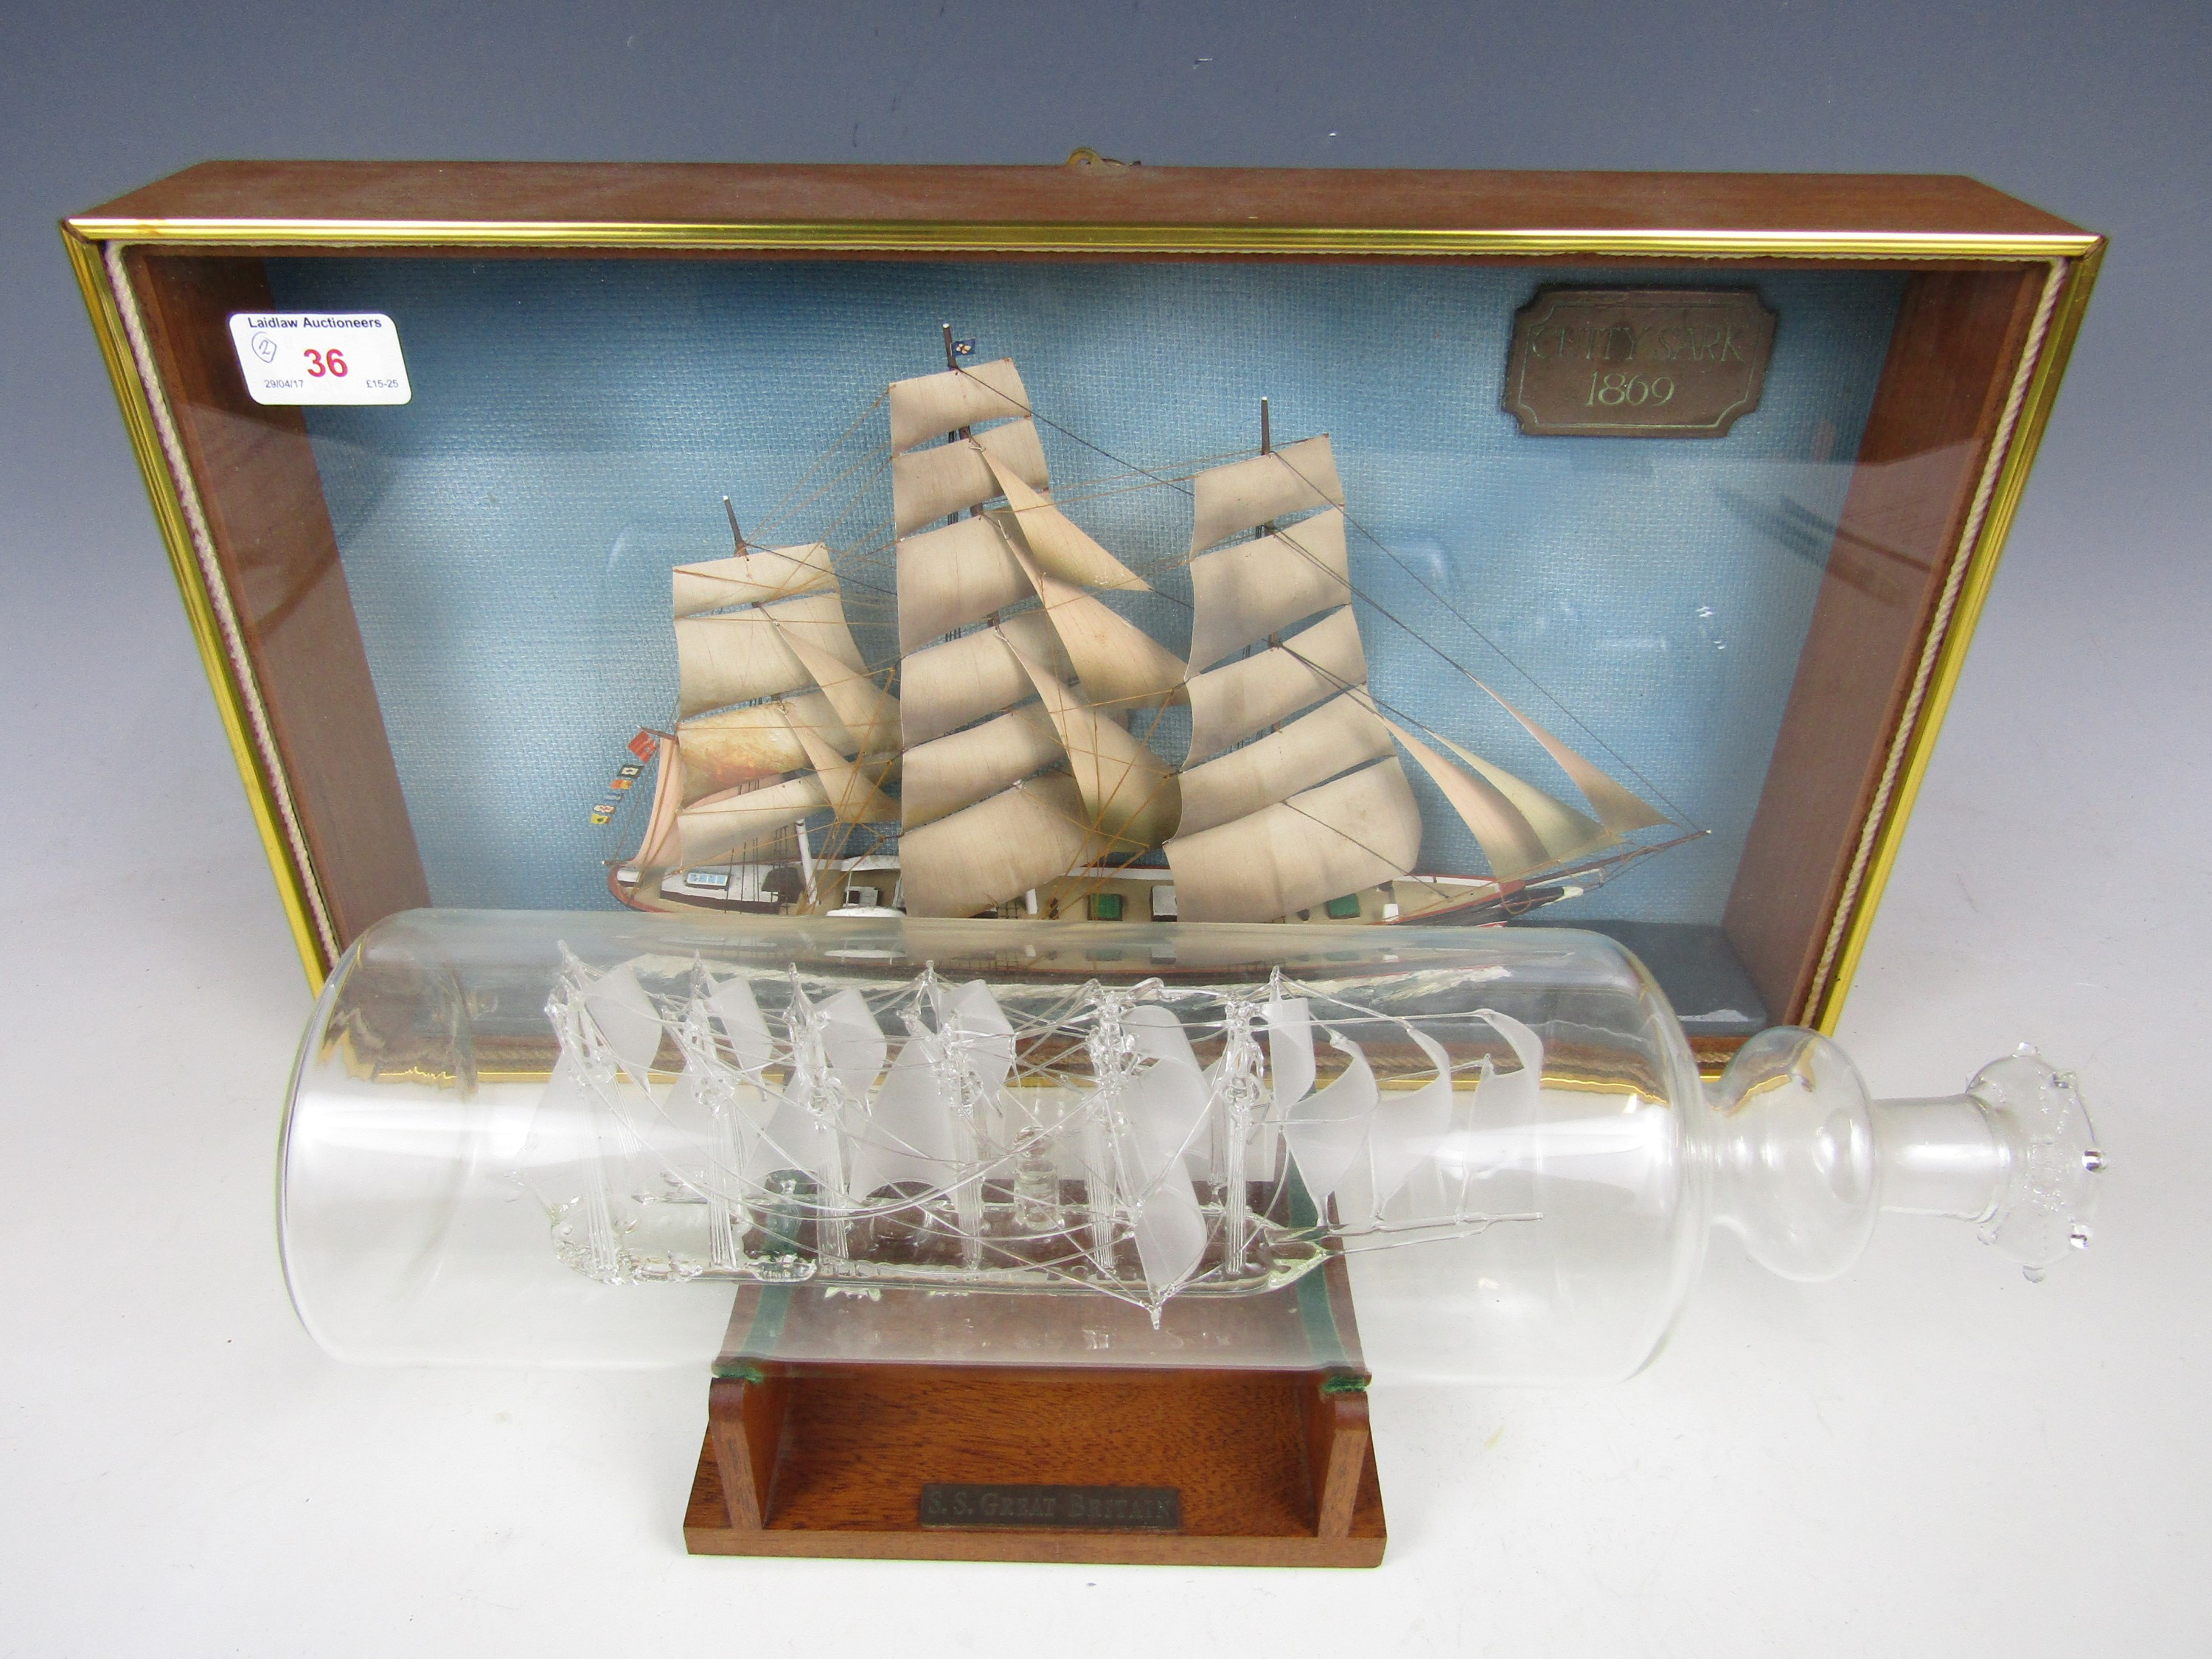 Lot 36 - A glass ship-in-a-bottle depicting the SS Great Britain together with a cased scale model of the